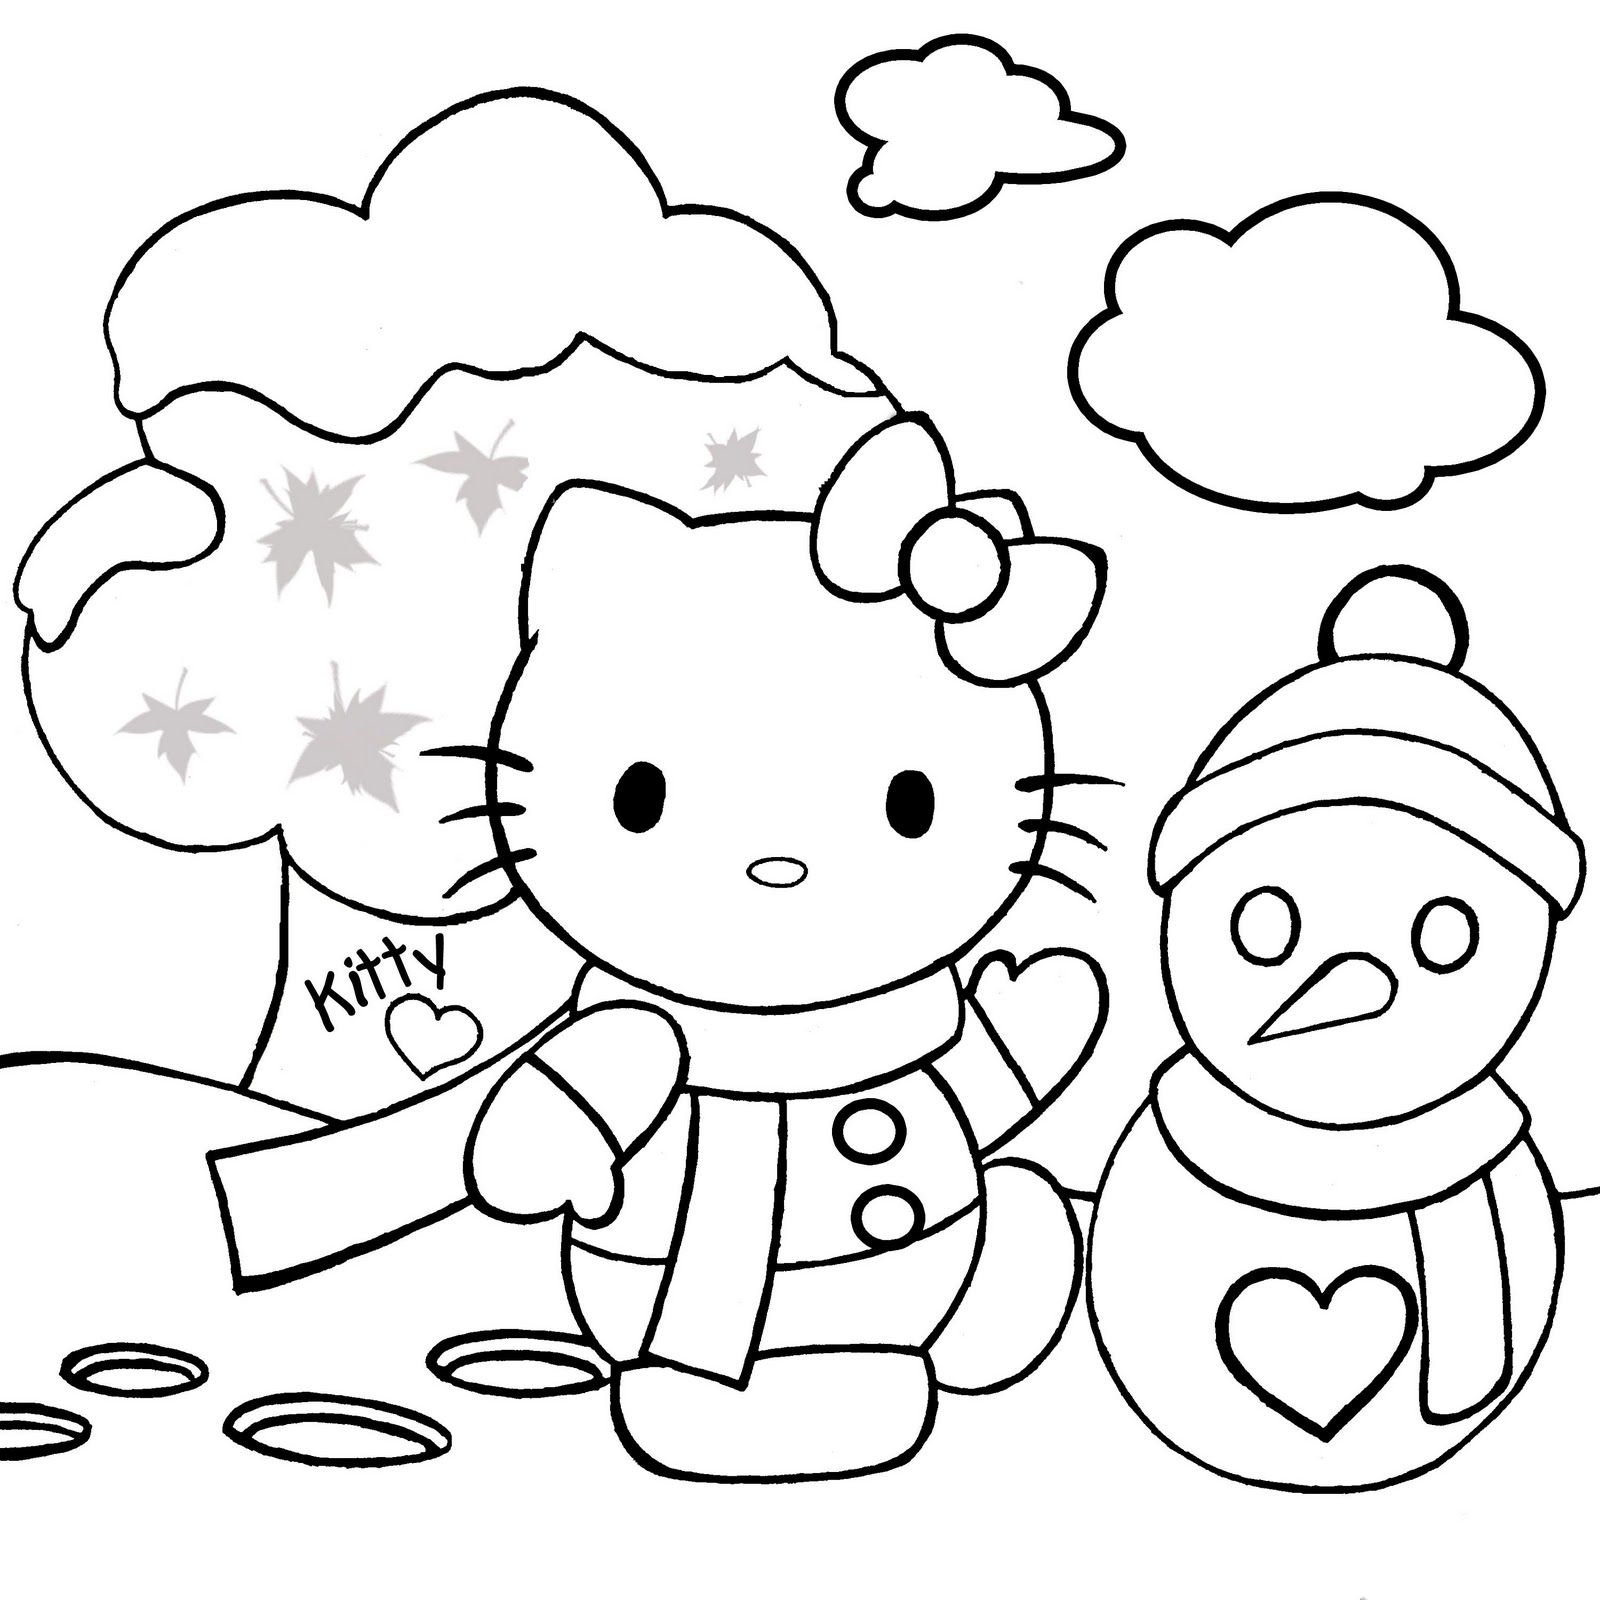 Printables Colouring Pages on